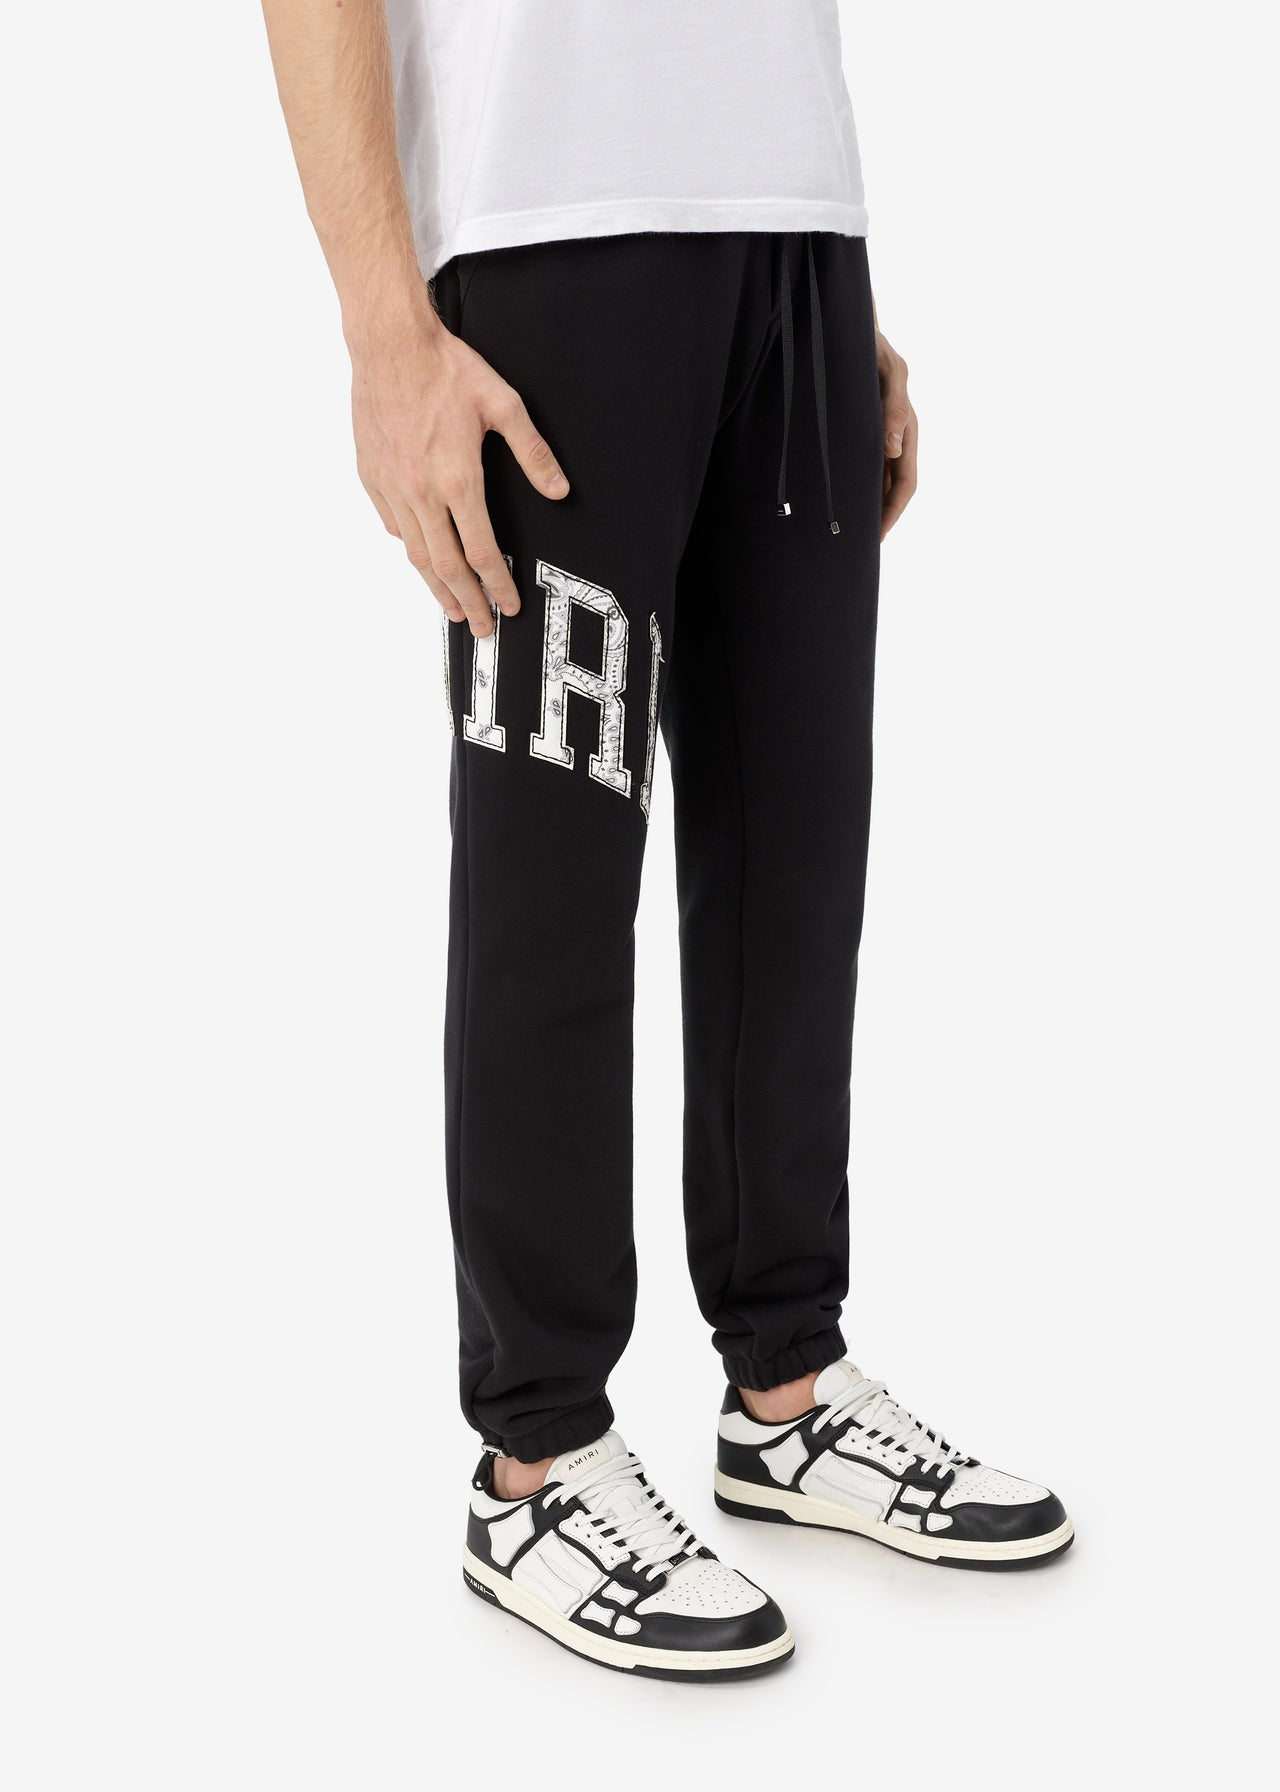 AMIRI VARSITY SWEATPANTS - BLACK